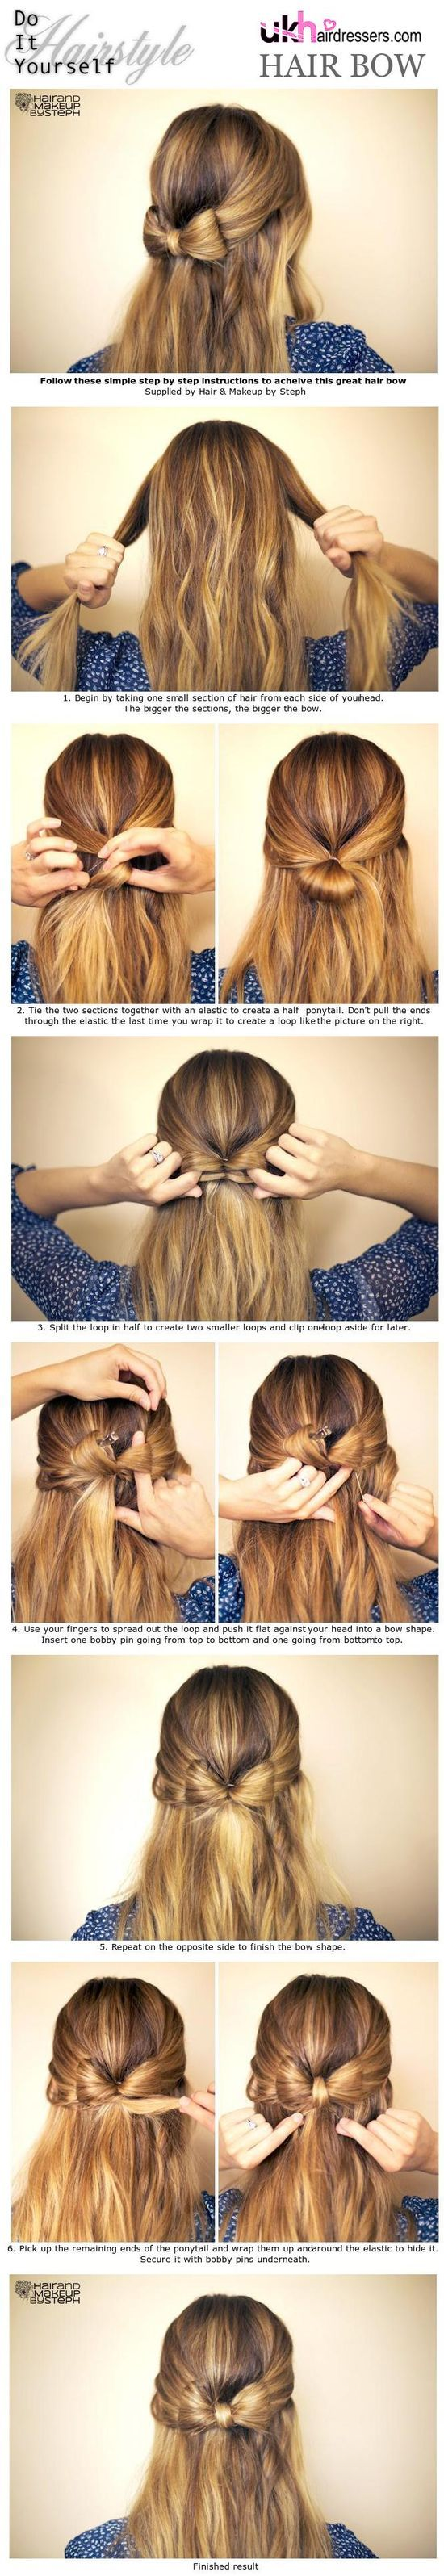 Nice bow hairstyle tutorial